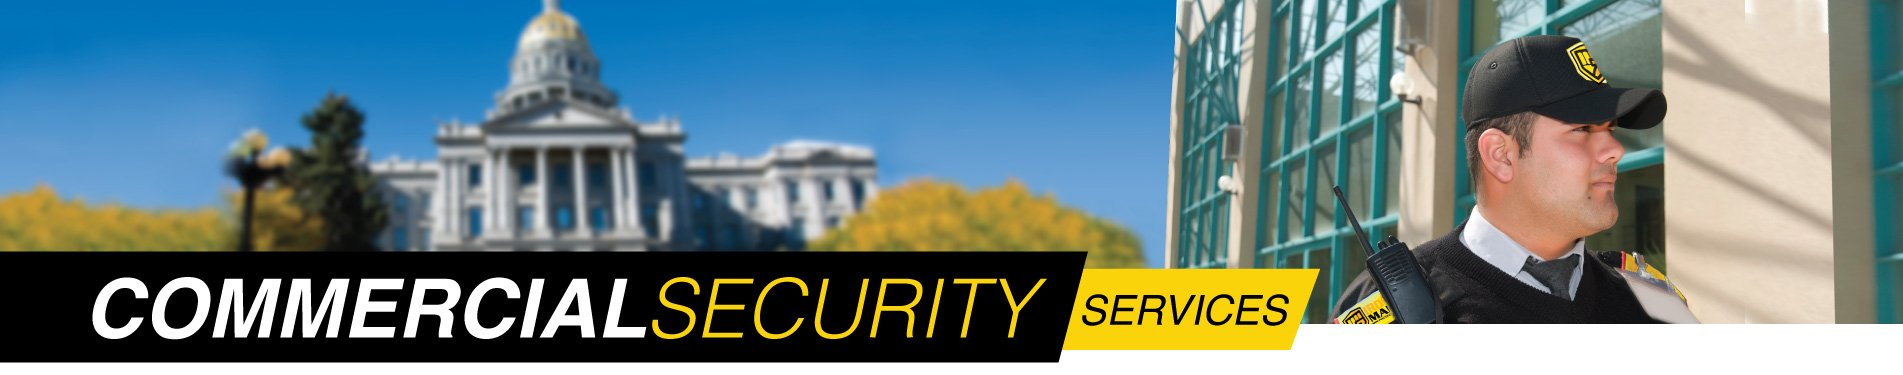 Houston area commercial security services.jpg